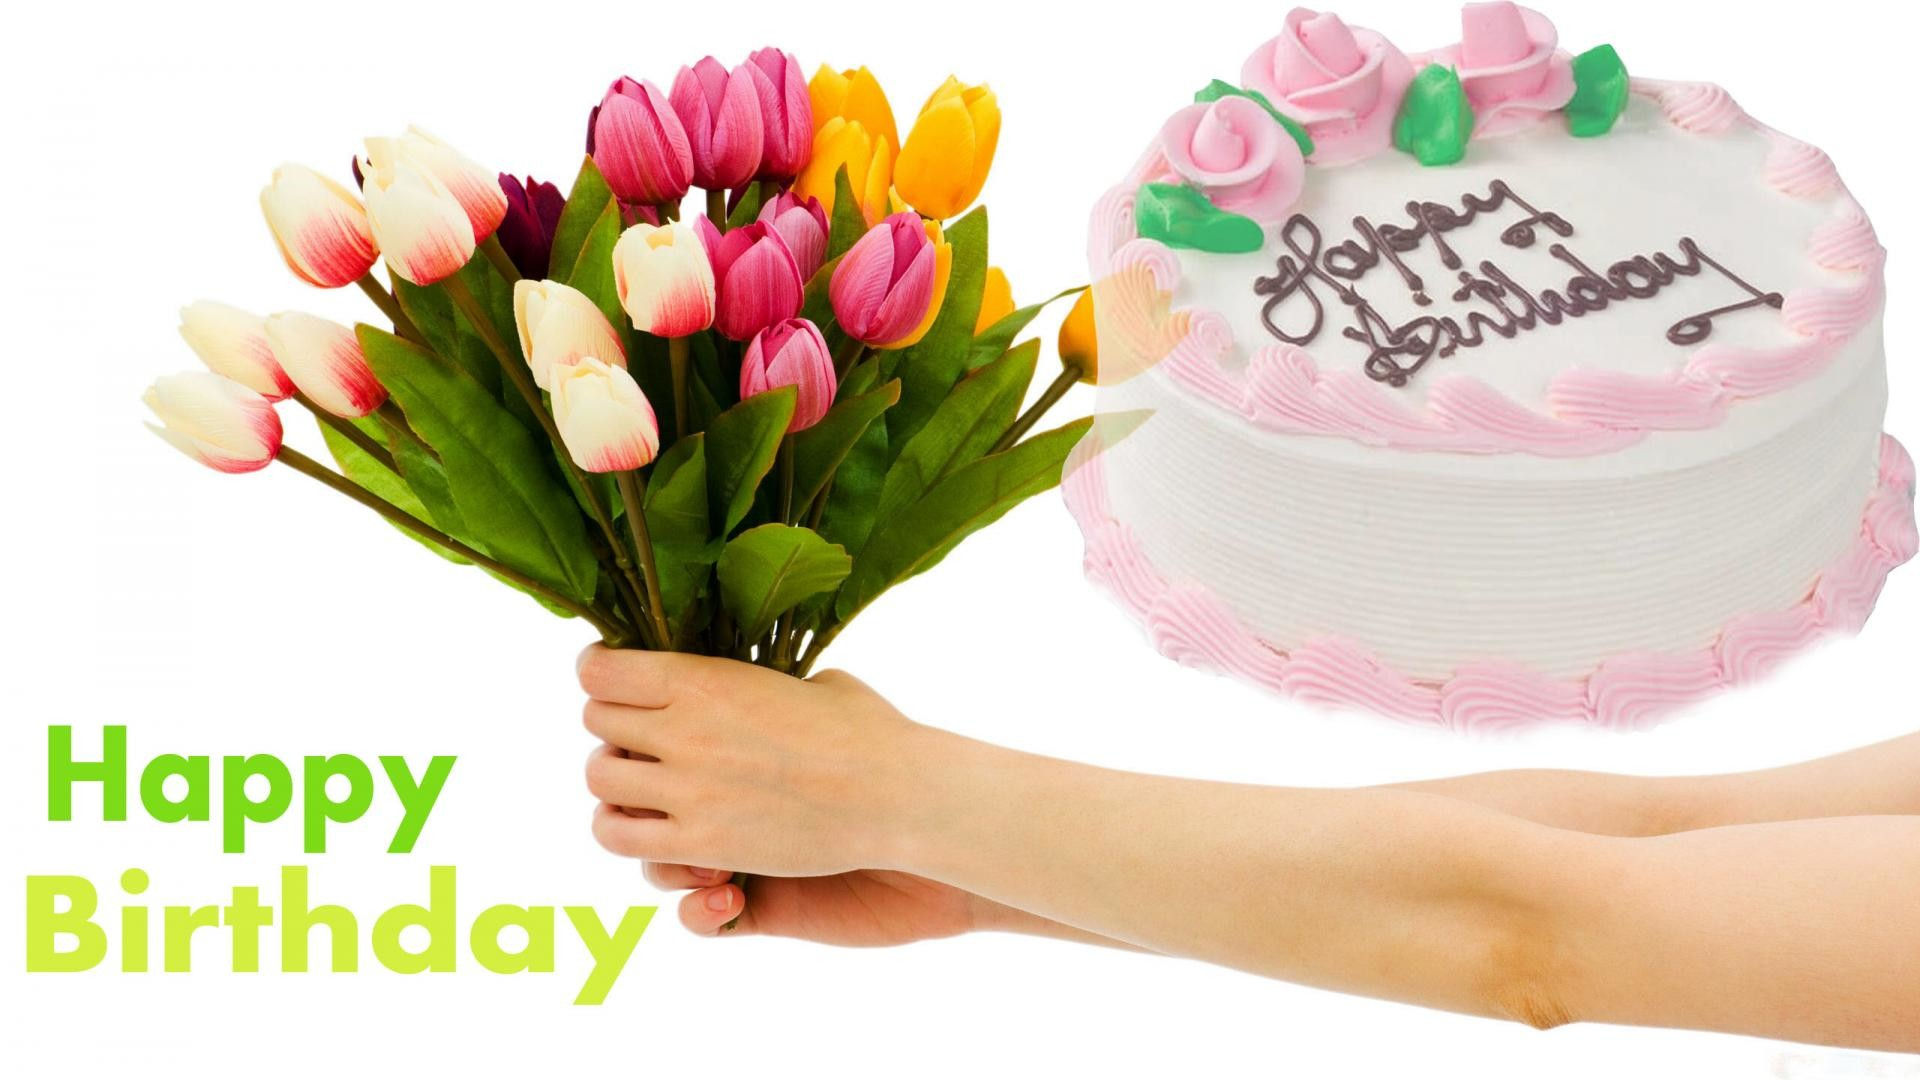 1920x1080 Happy Birthday Cake With Name Edit Online Free Awesome Party Ideas